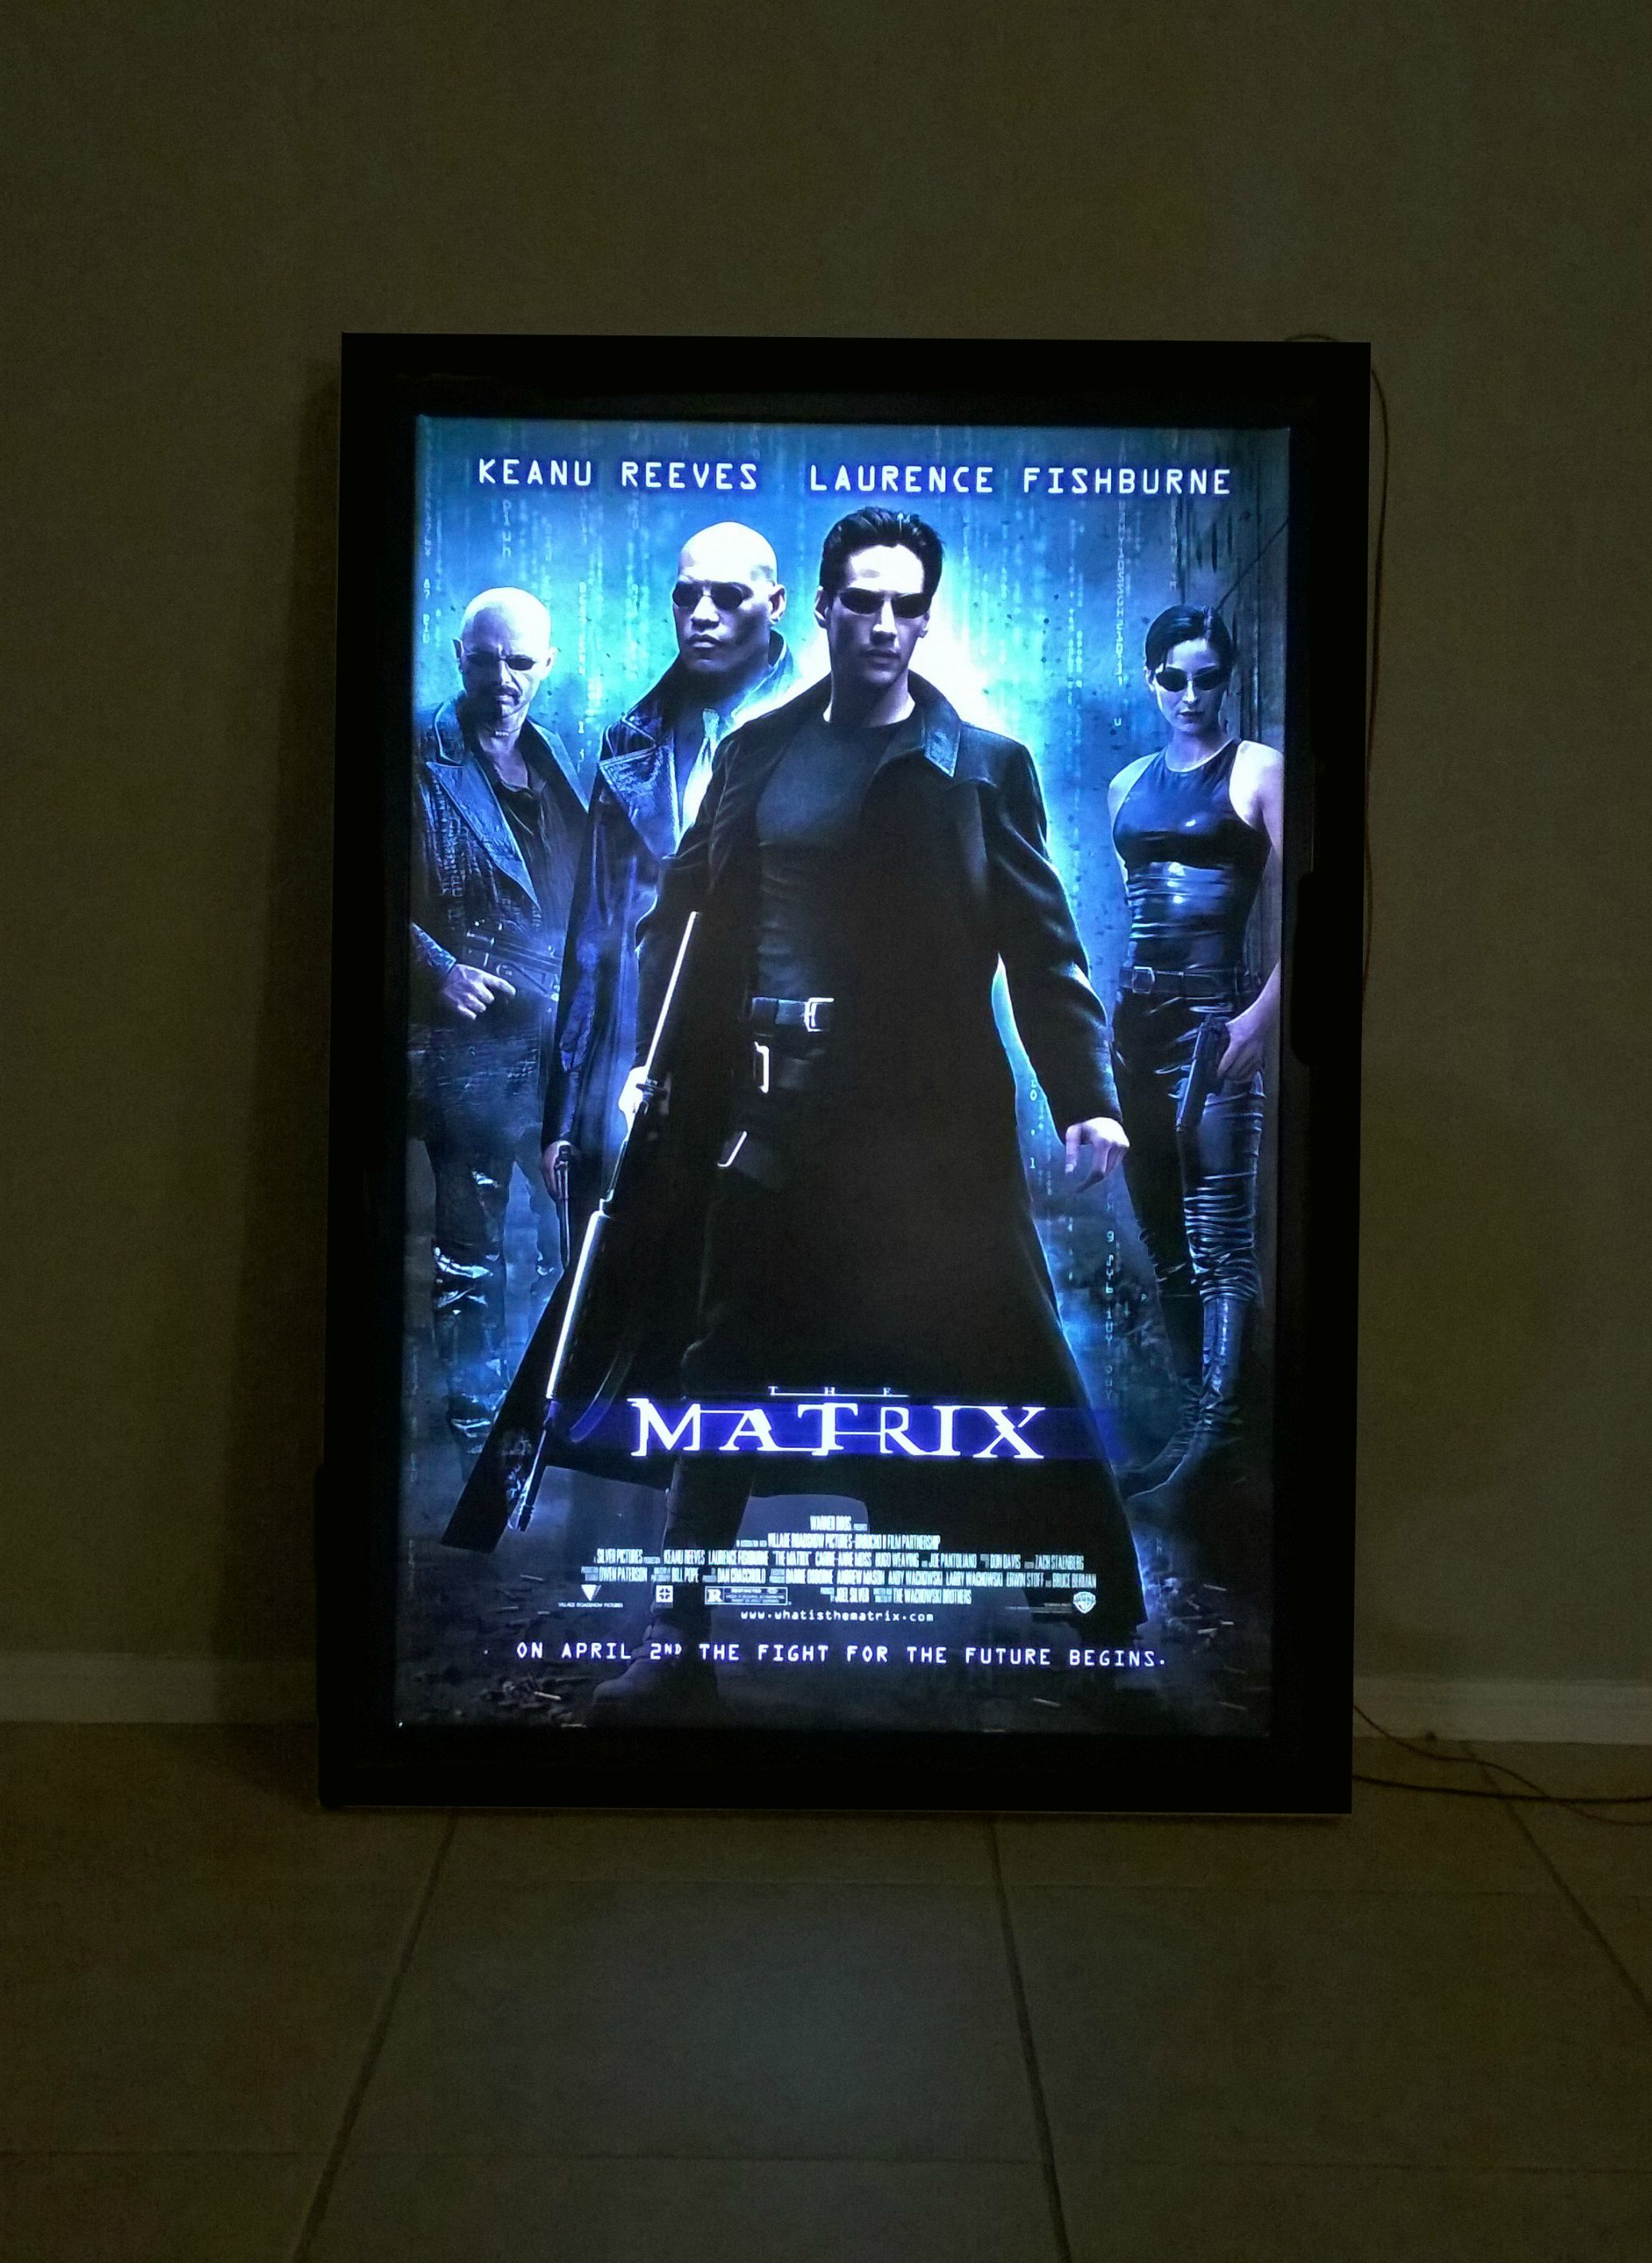 Led Movie Poster Light Box Home Theater Decor Diy